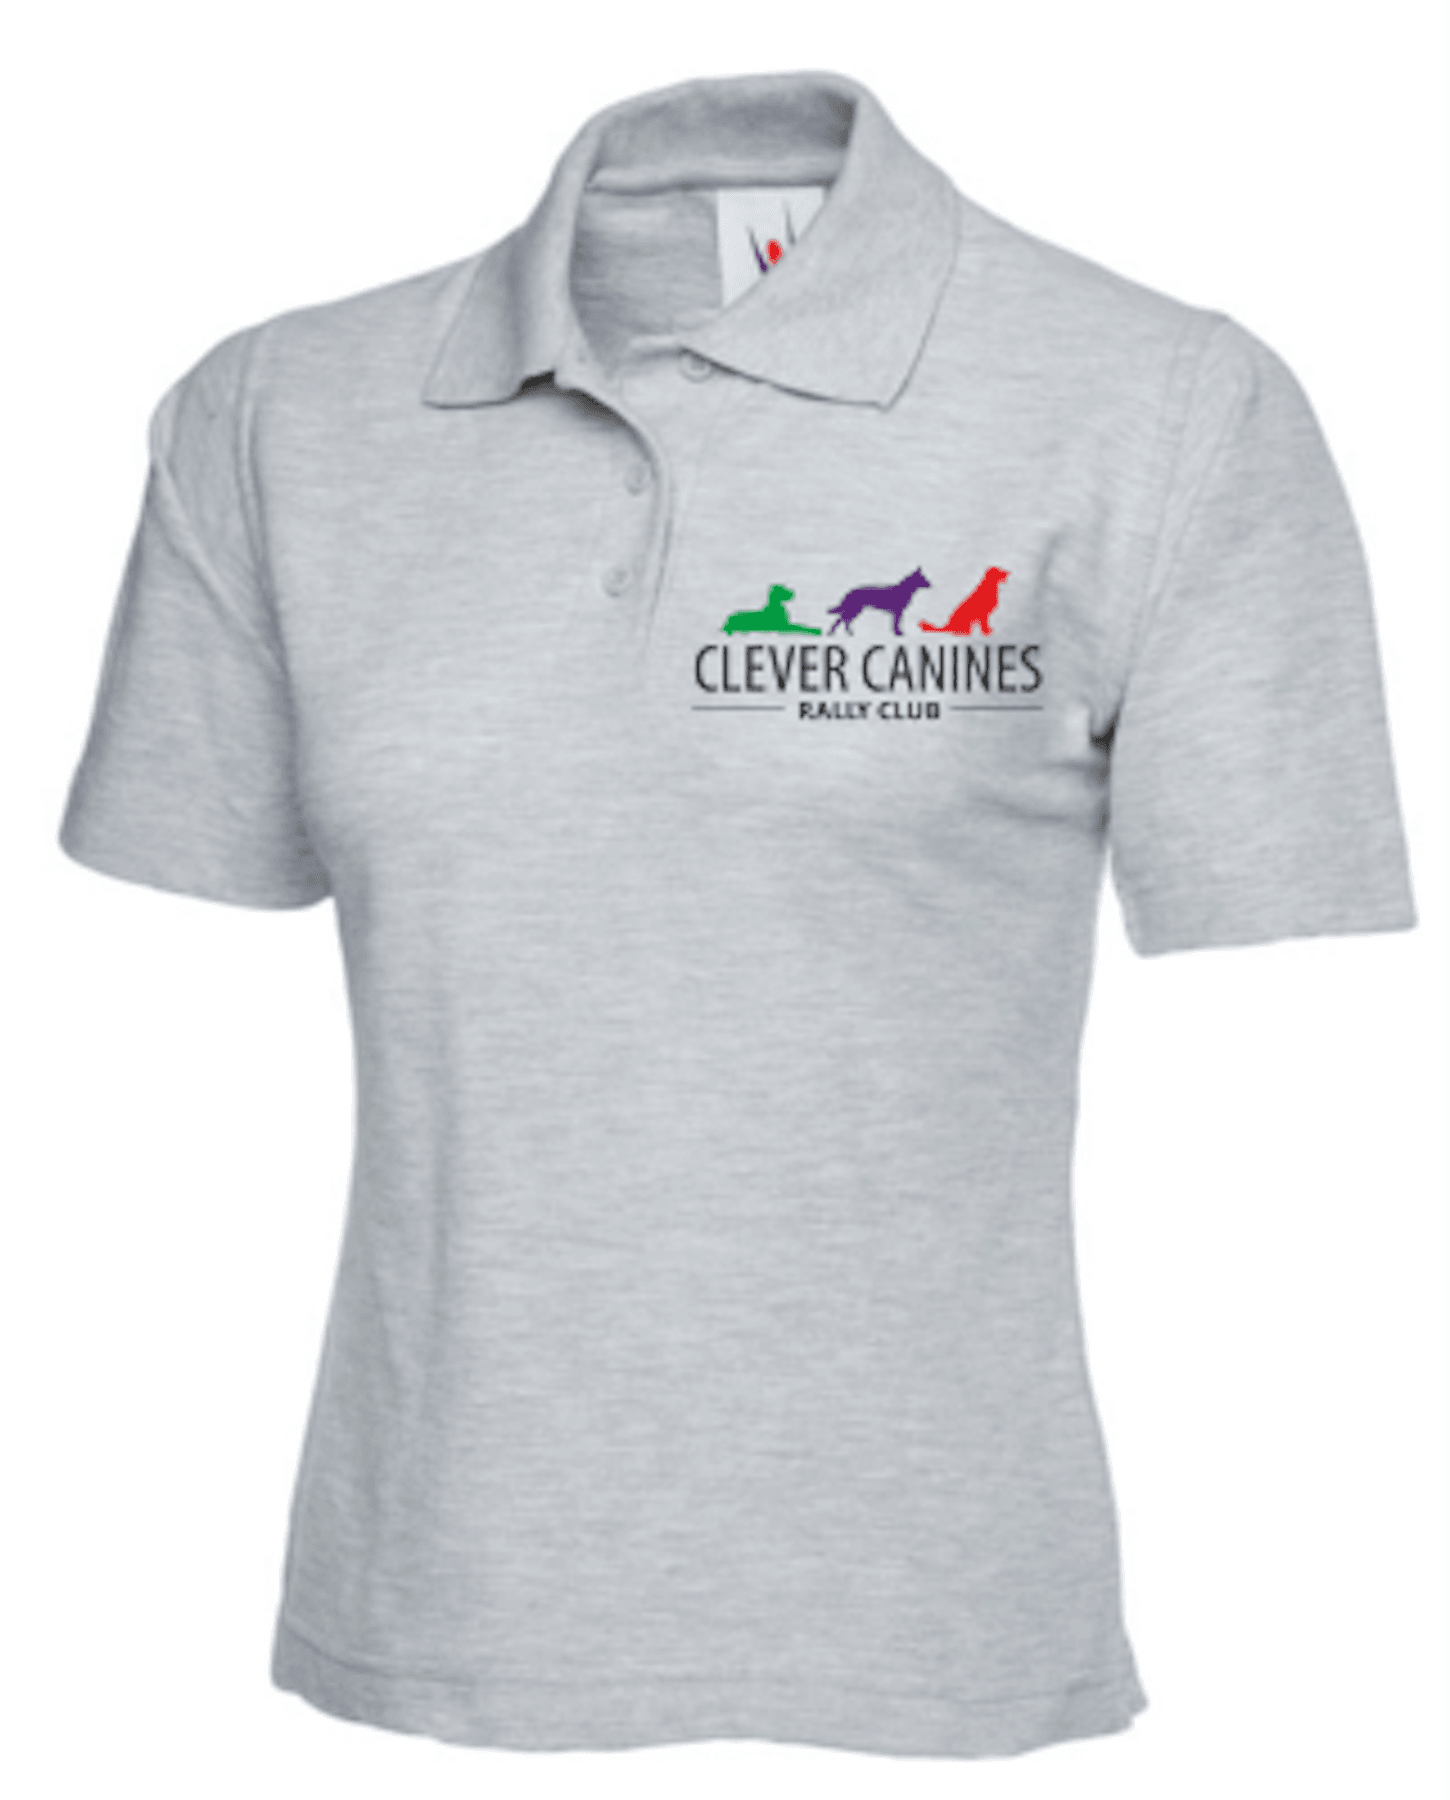 Clever Canines Rally Club Ladyfit Polo